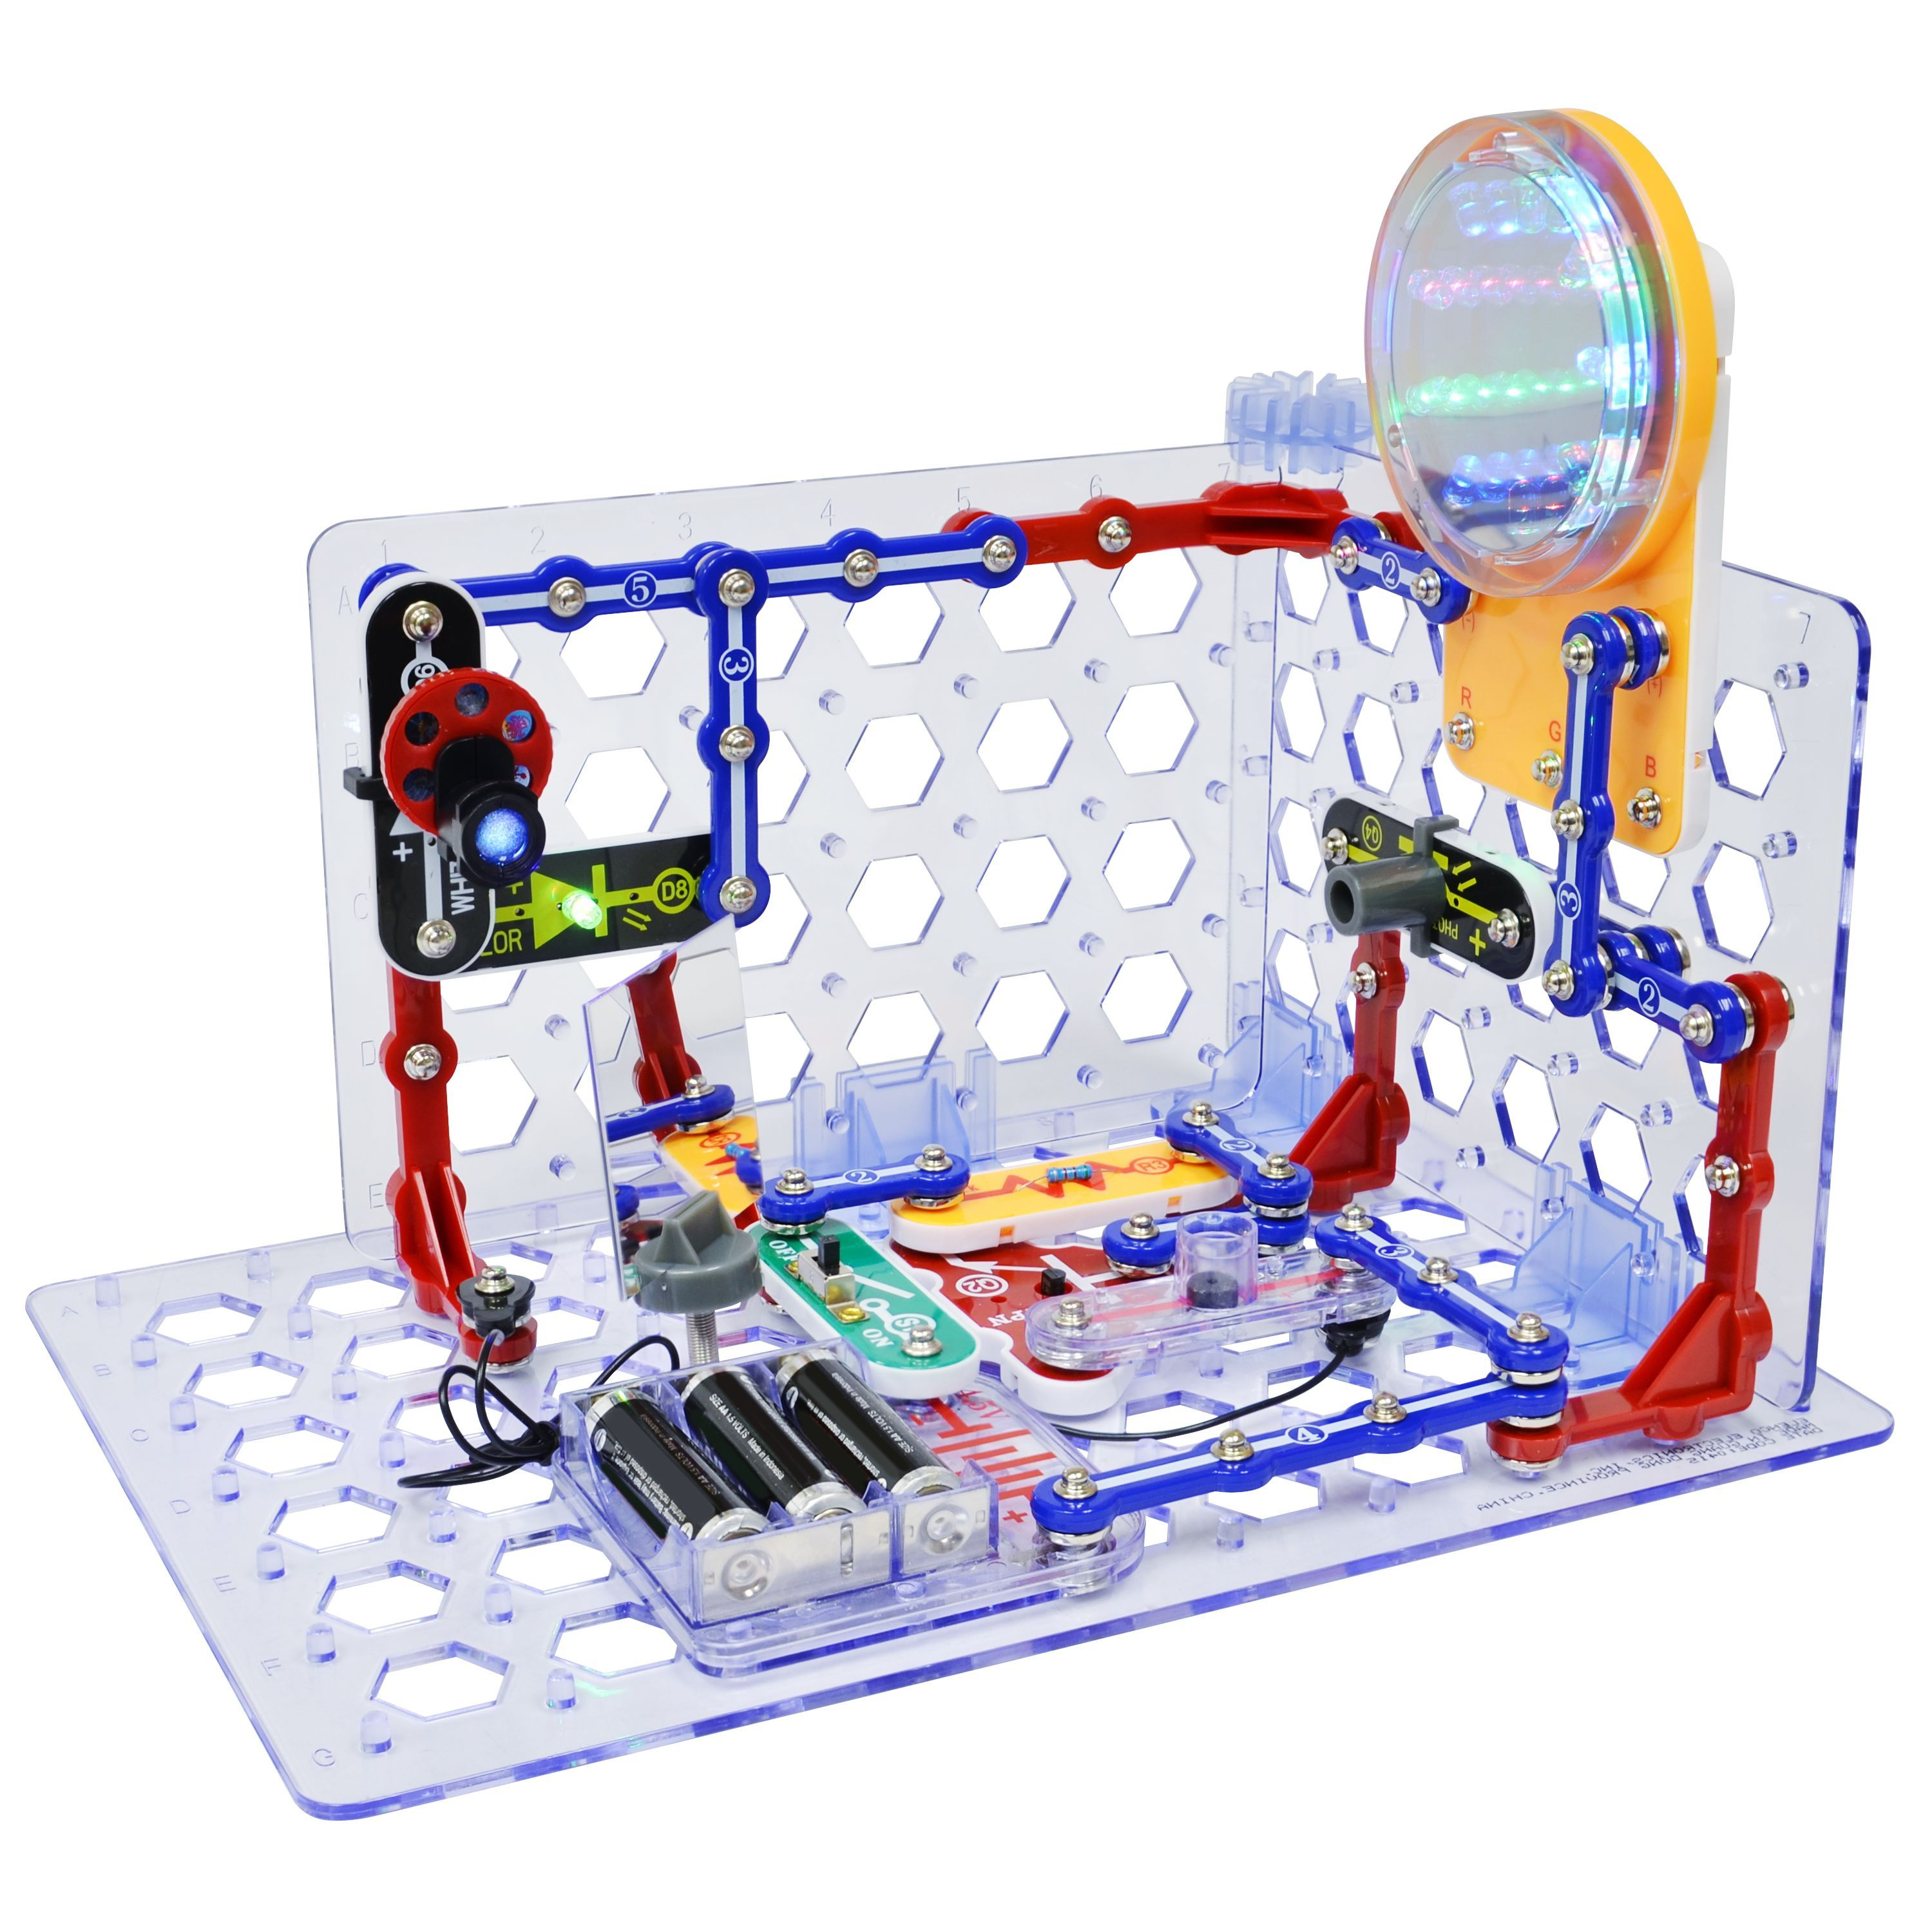 New Snap Circuits 3di Takes To A Whole Dimension Lights Electric Circuit Science Kit By Elenco It Includes 150 Different Projects All In One Light Tunnel Projector With Images